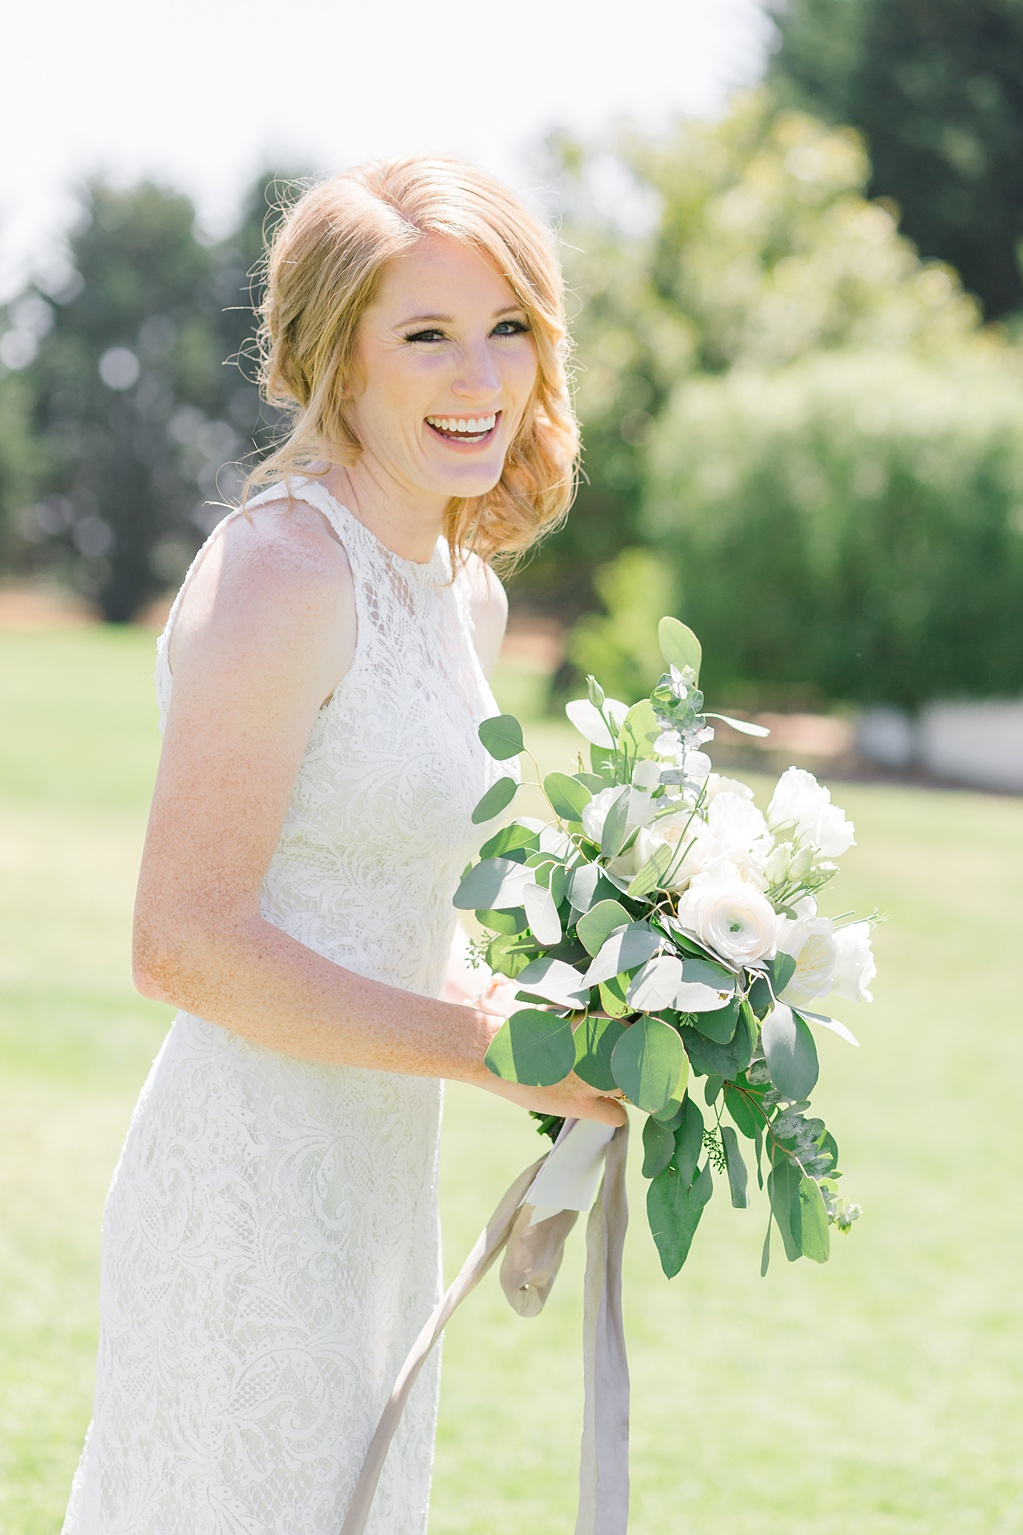 White Barn Inspired Summer Wedding In The Valley of Arroyo Grande, California by Wedding Photographer Madison Ellis (48)